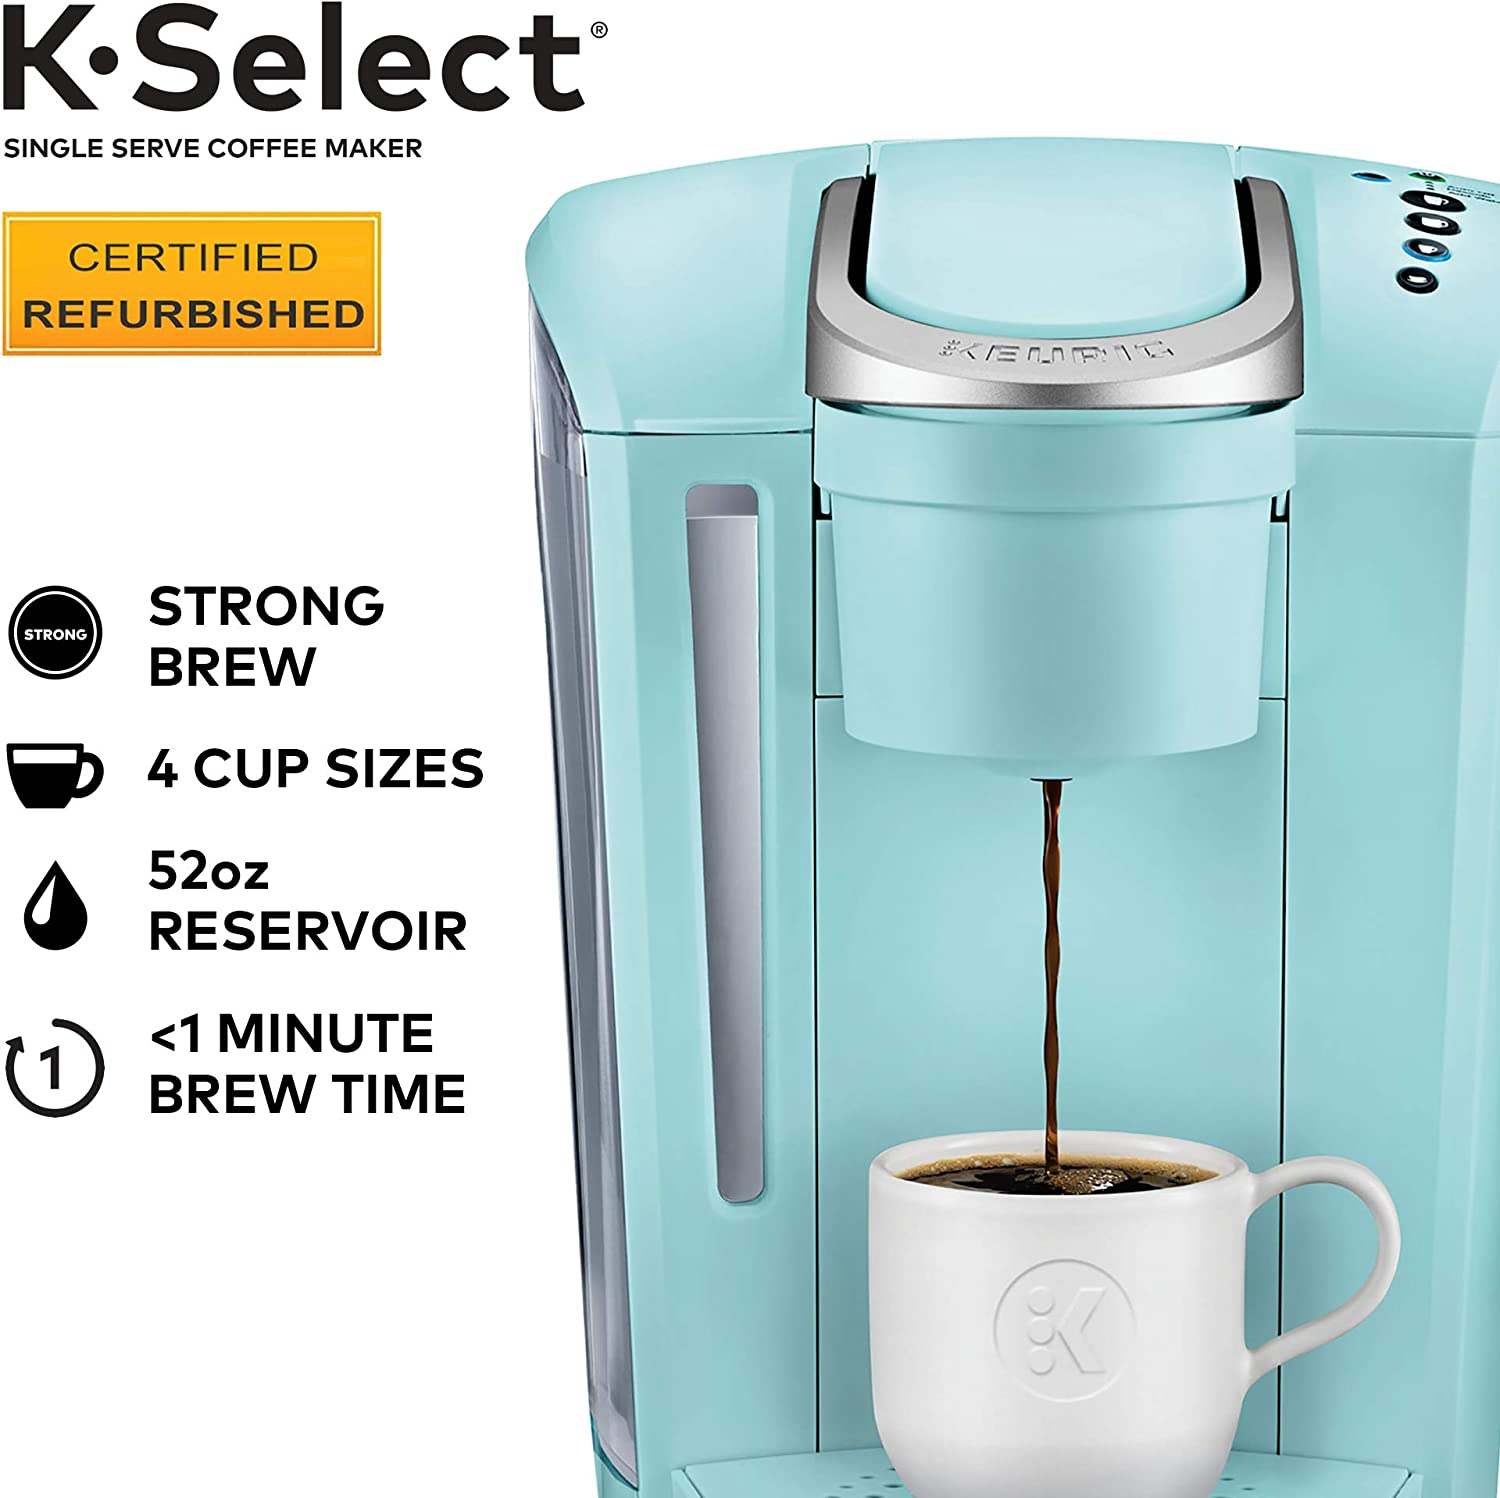 Keurig K-Select Certified Refurbished Coffee Maker, Single Serve K-Cup Pod Coffee Brewer, With Strength Control and Hot Water On Demand, Oasis